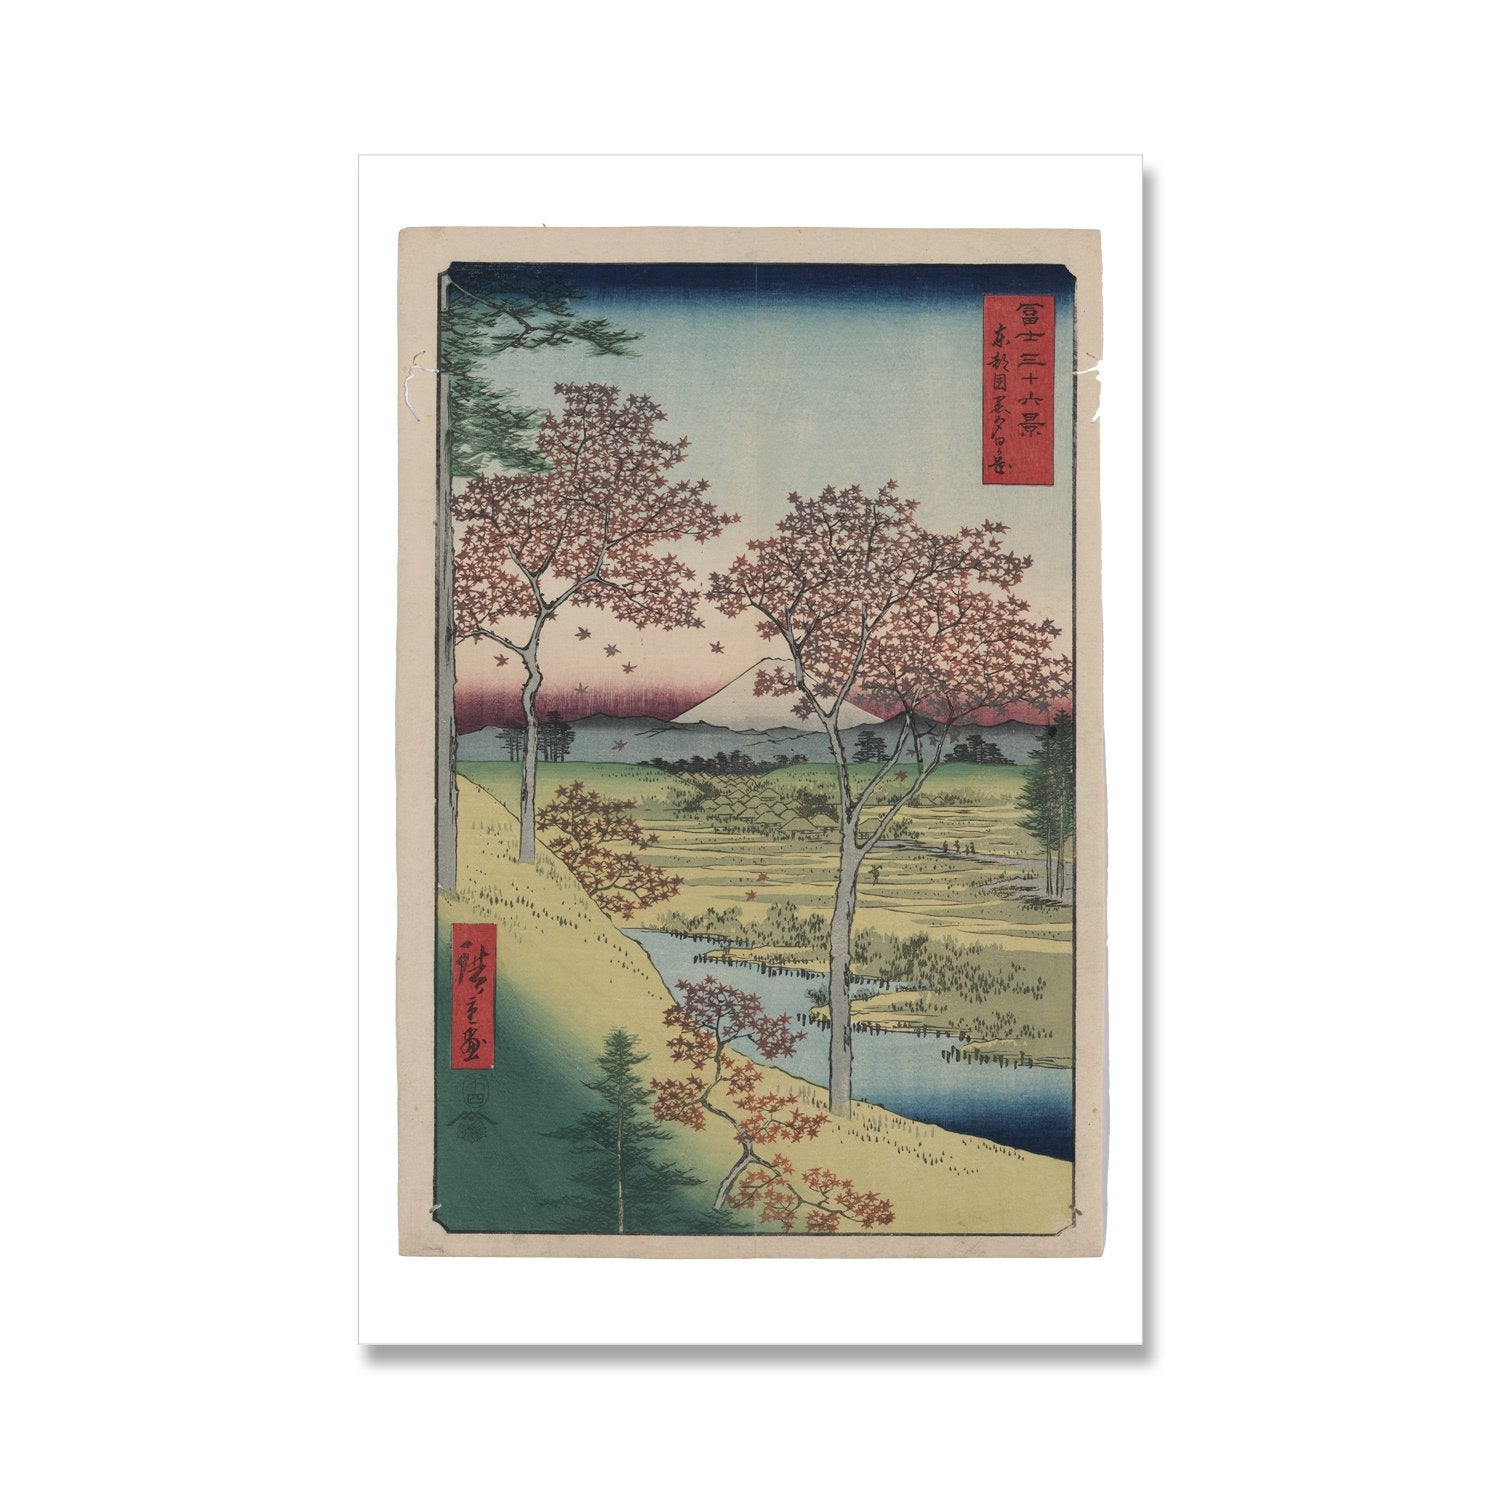 1850 watercolour of autumn leaves by japanese artist Ando Hiroshige